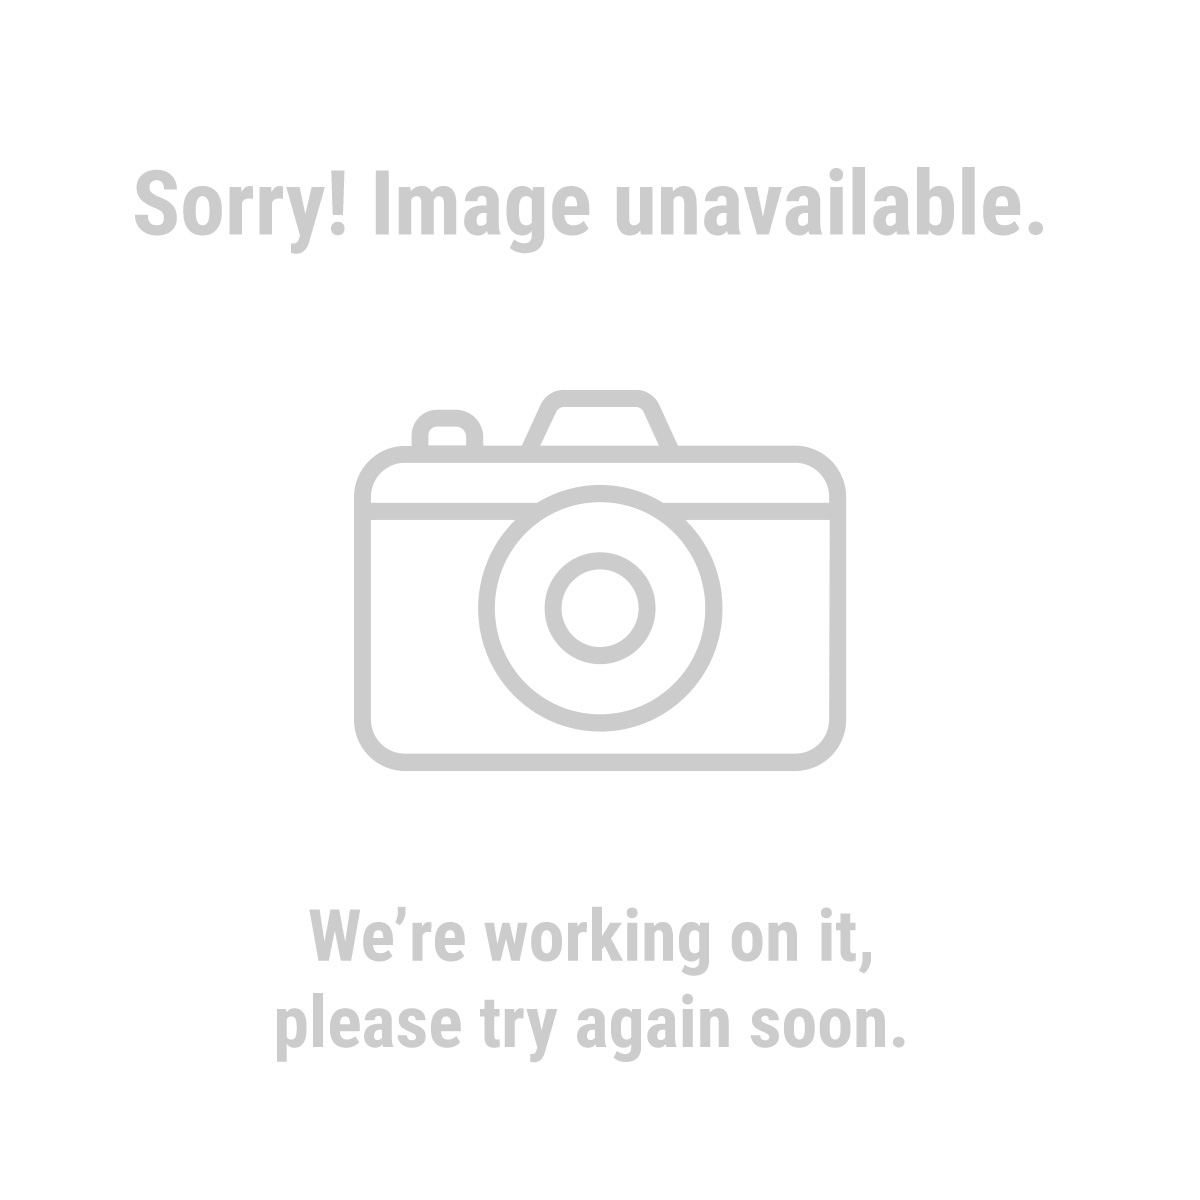 Warrior 60831 4 in. 36 Grit Metal Grinding Wheel 10 Pc